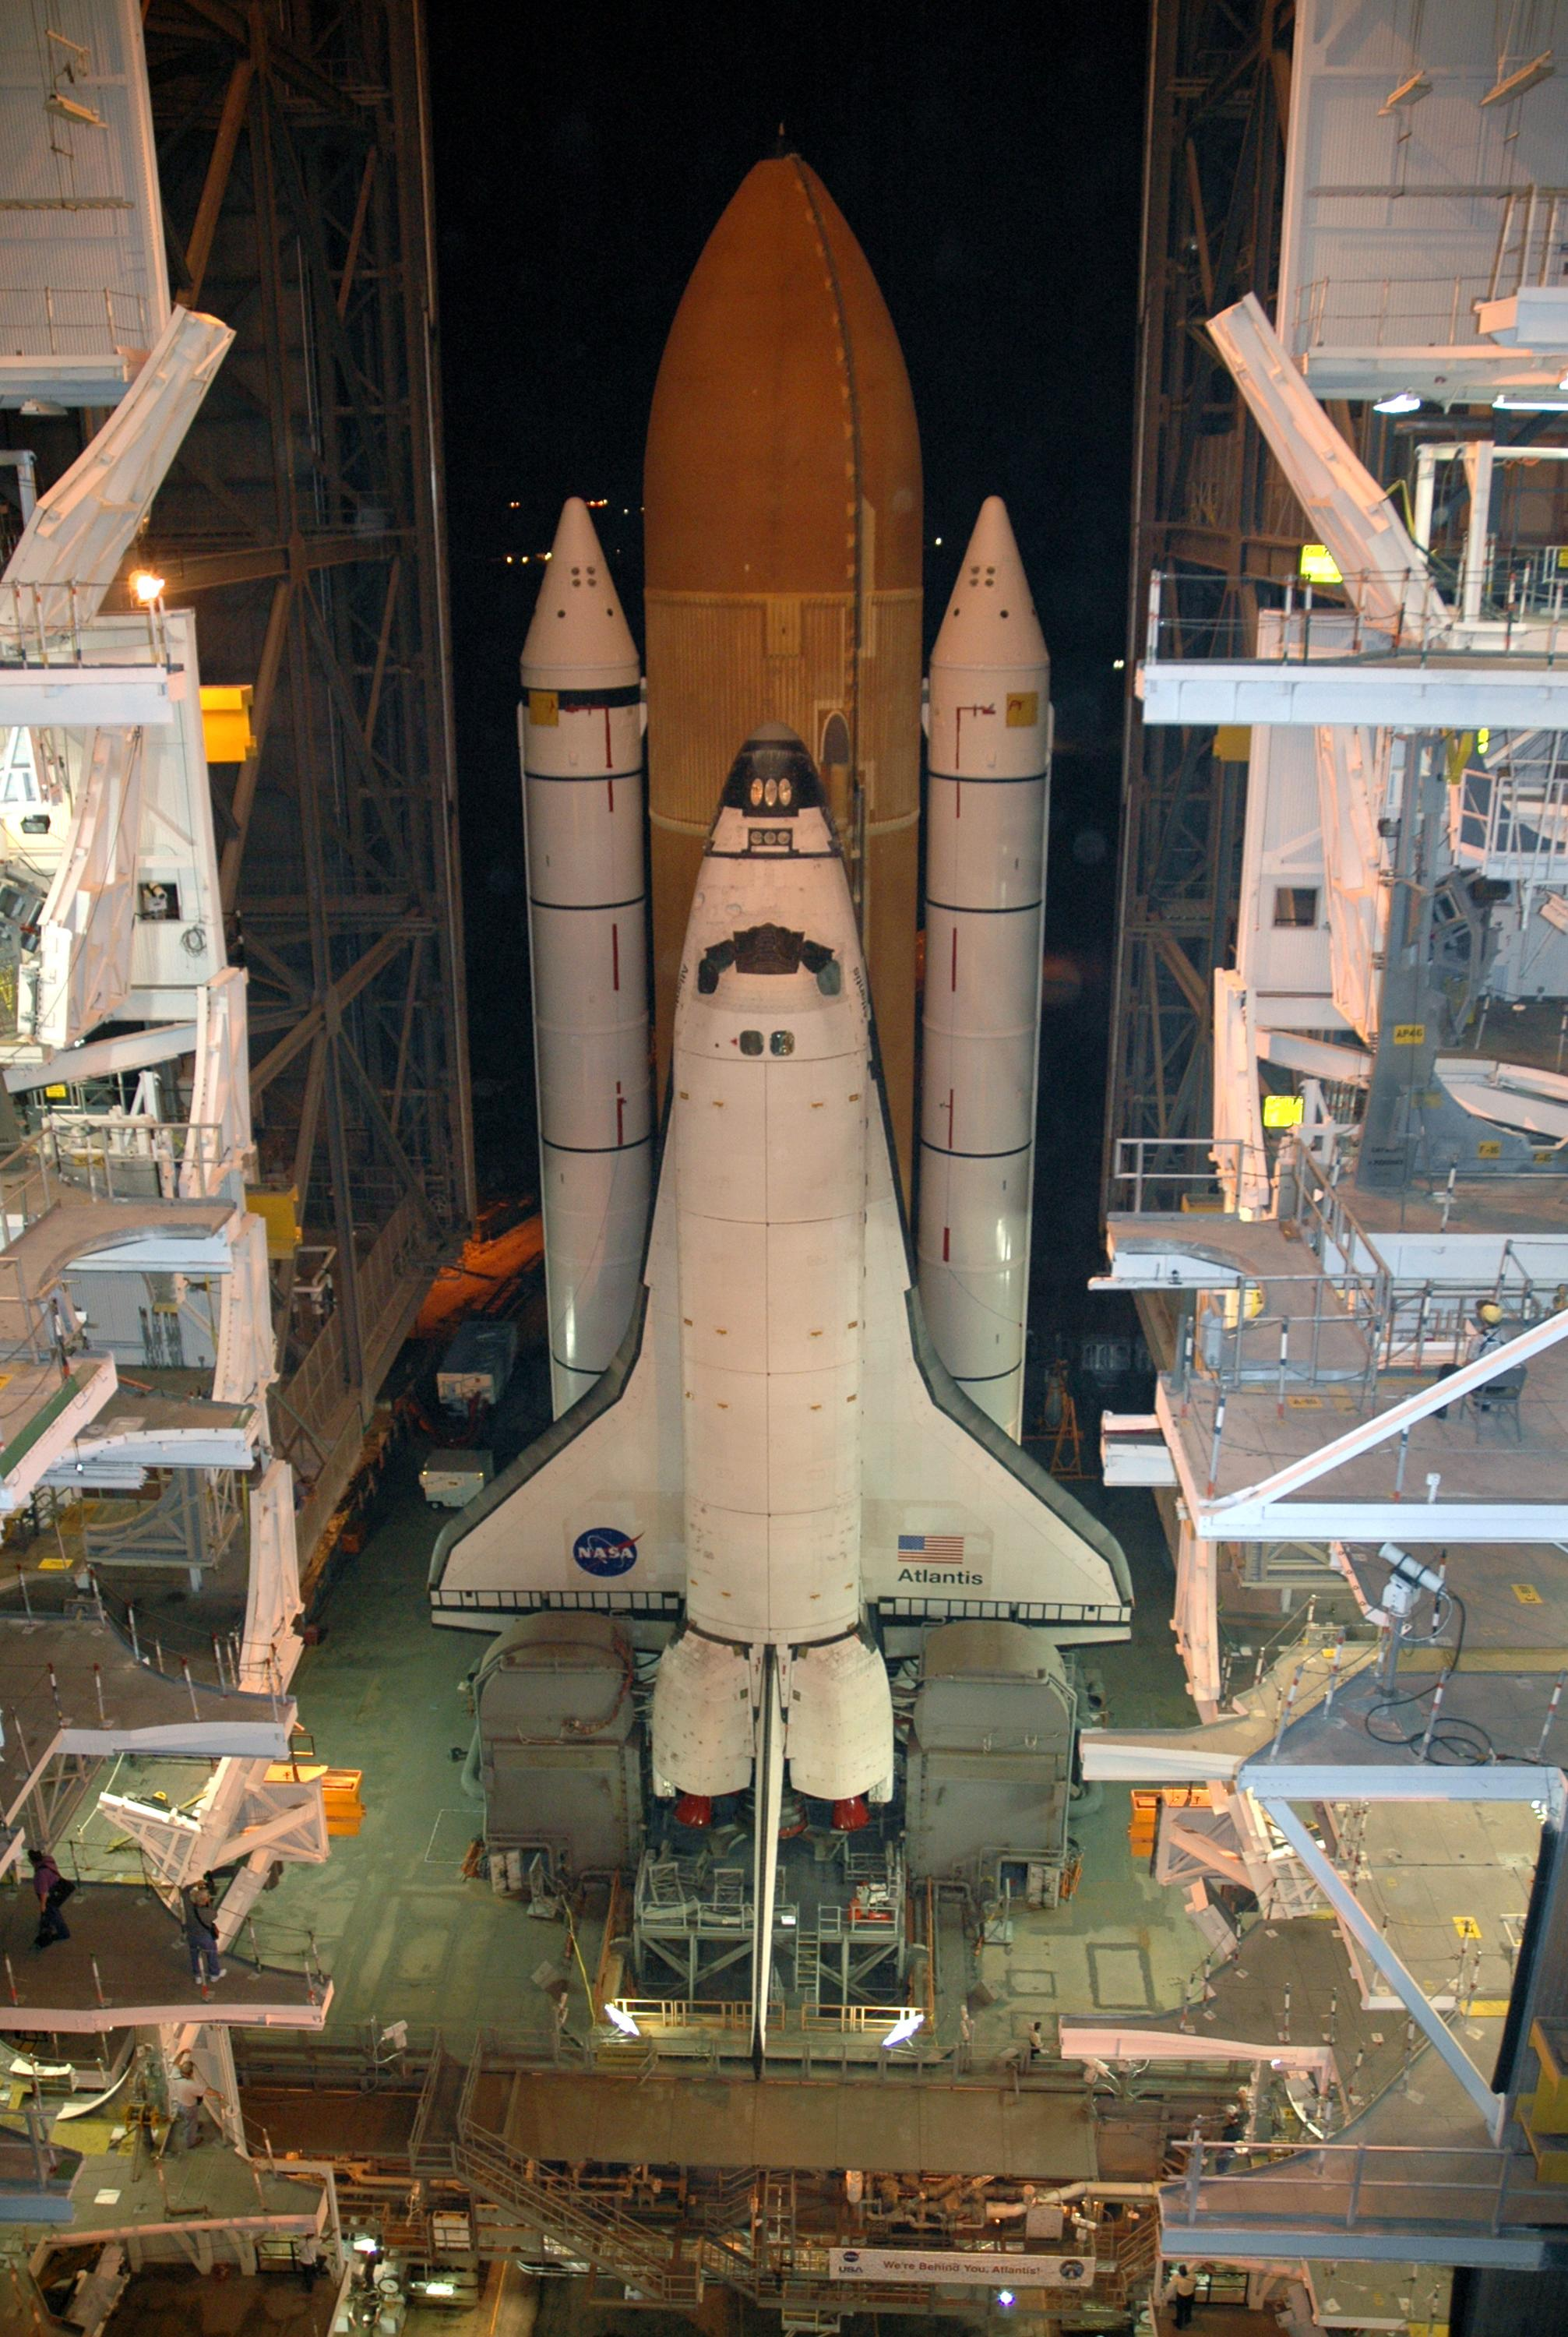 Space Shuttle sts #11